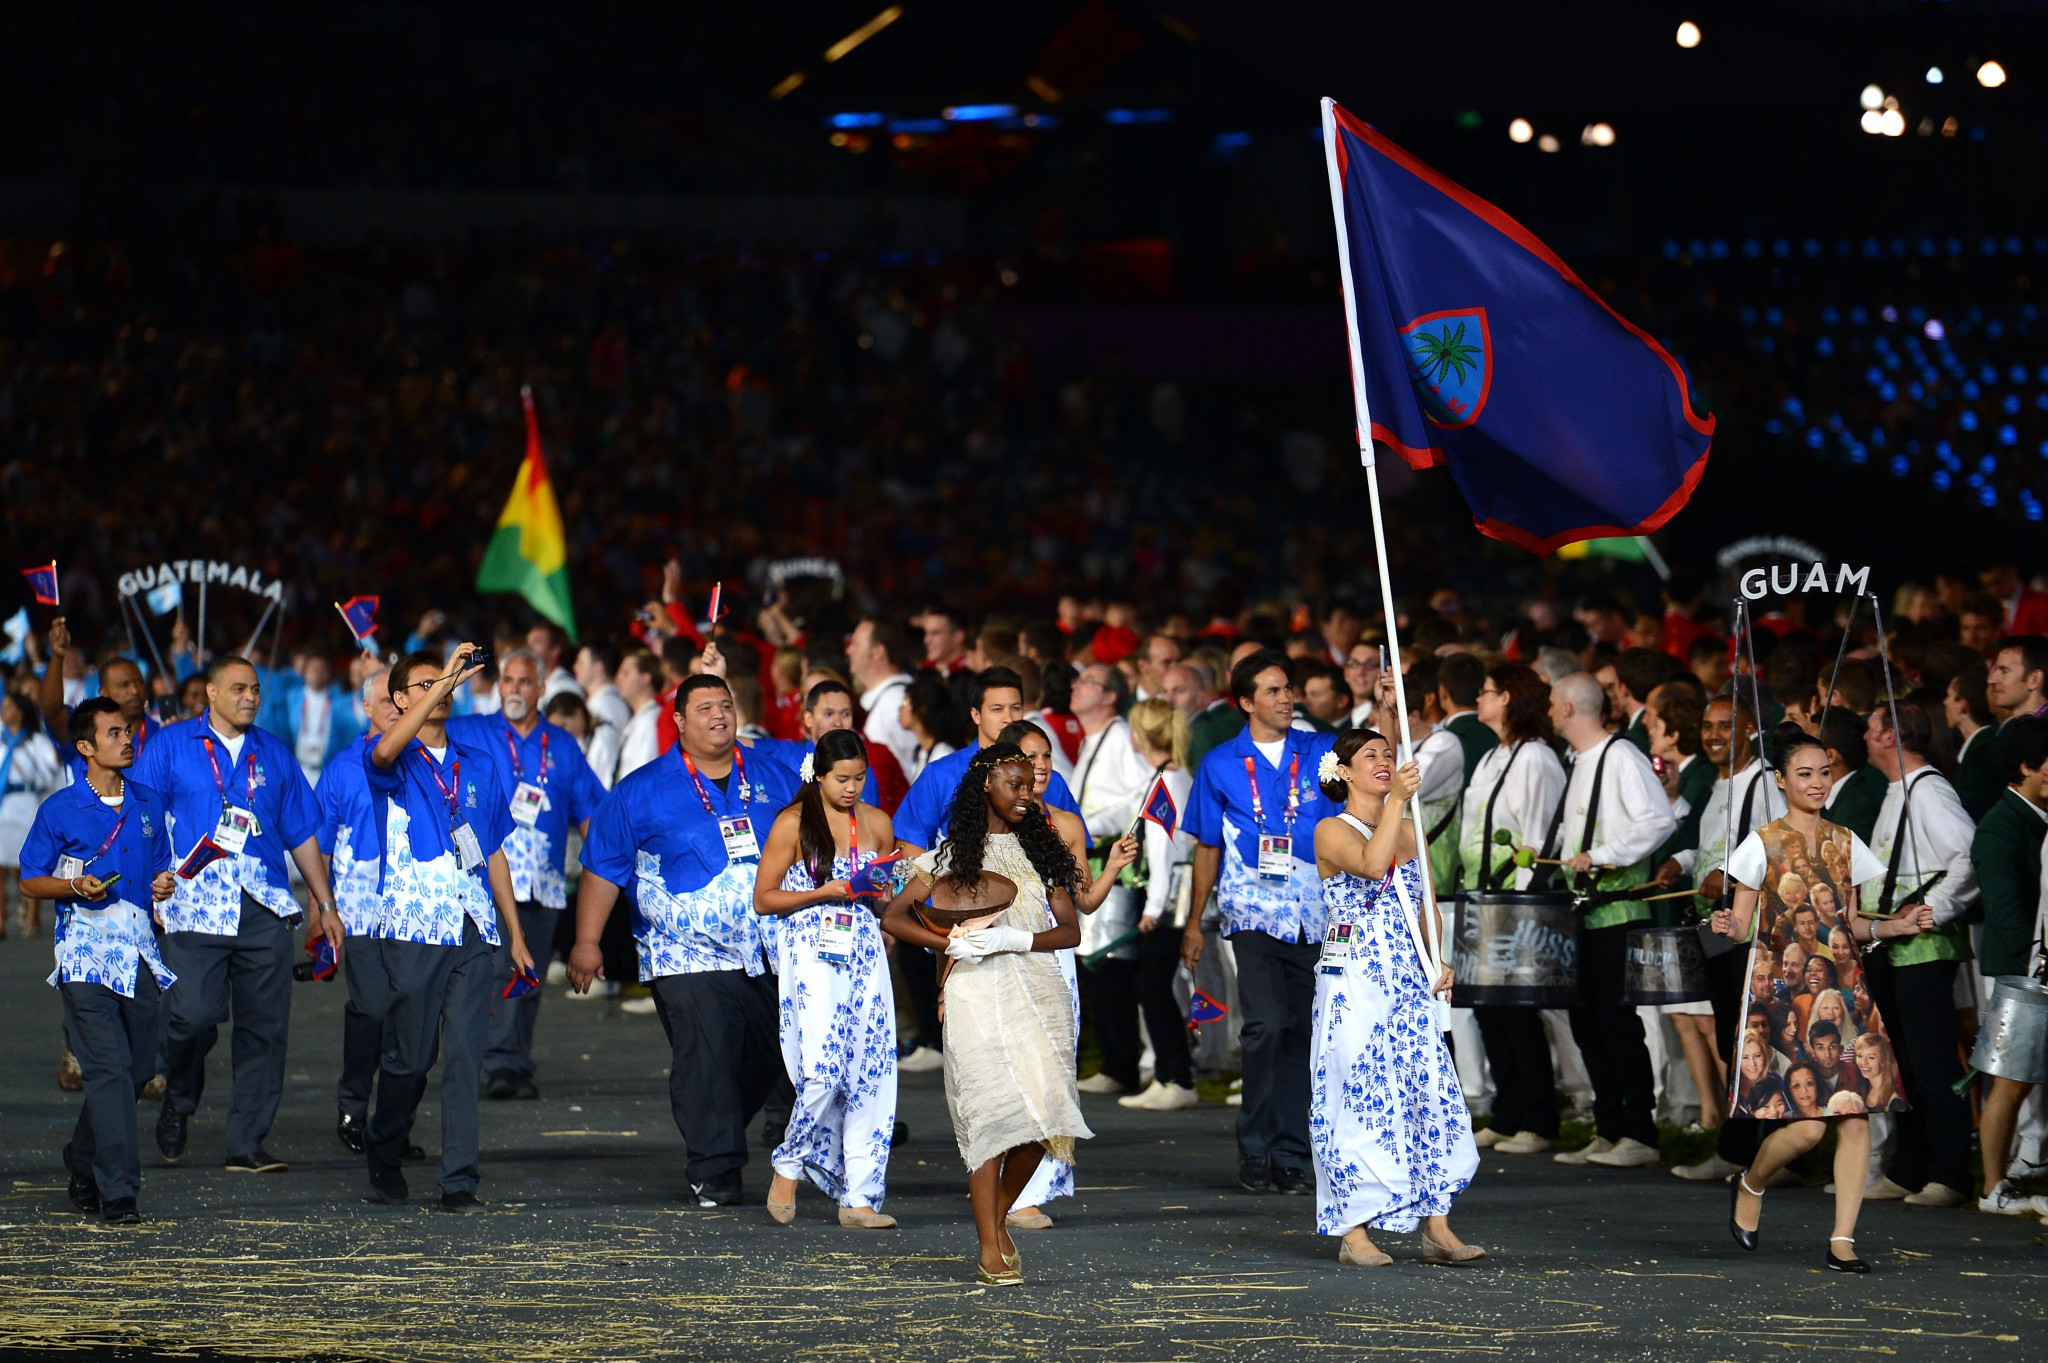 The Guam National Olympic Committee's sponsor has released a series of videos ©Getty Images